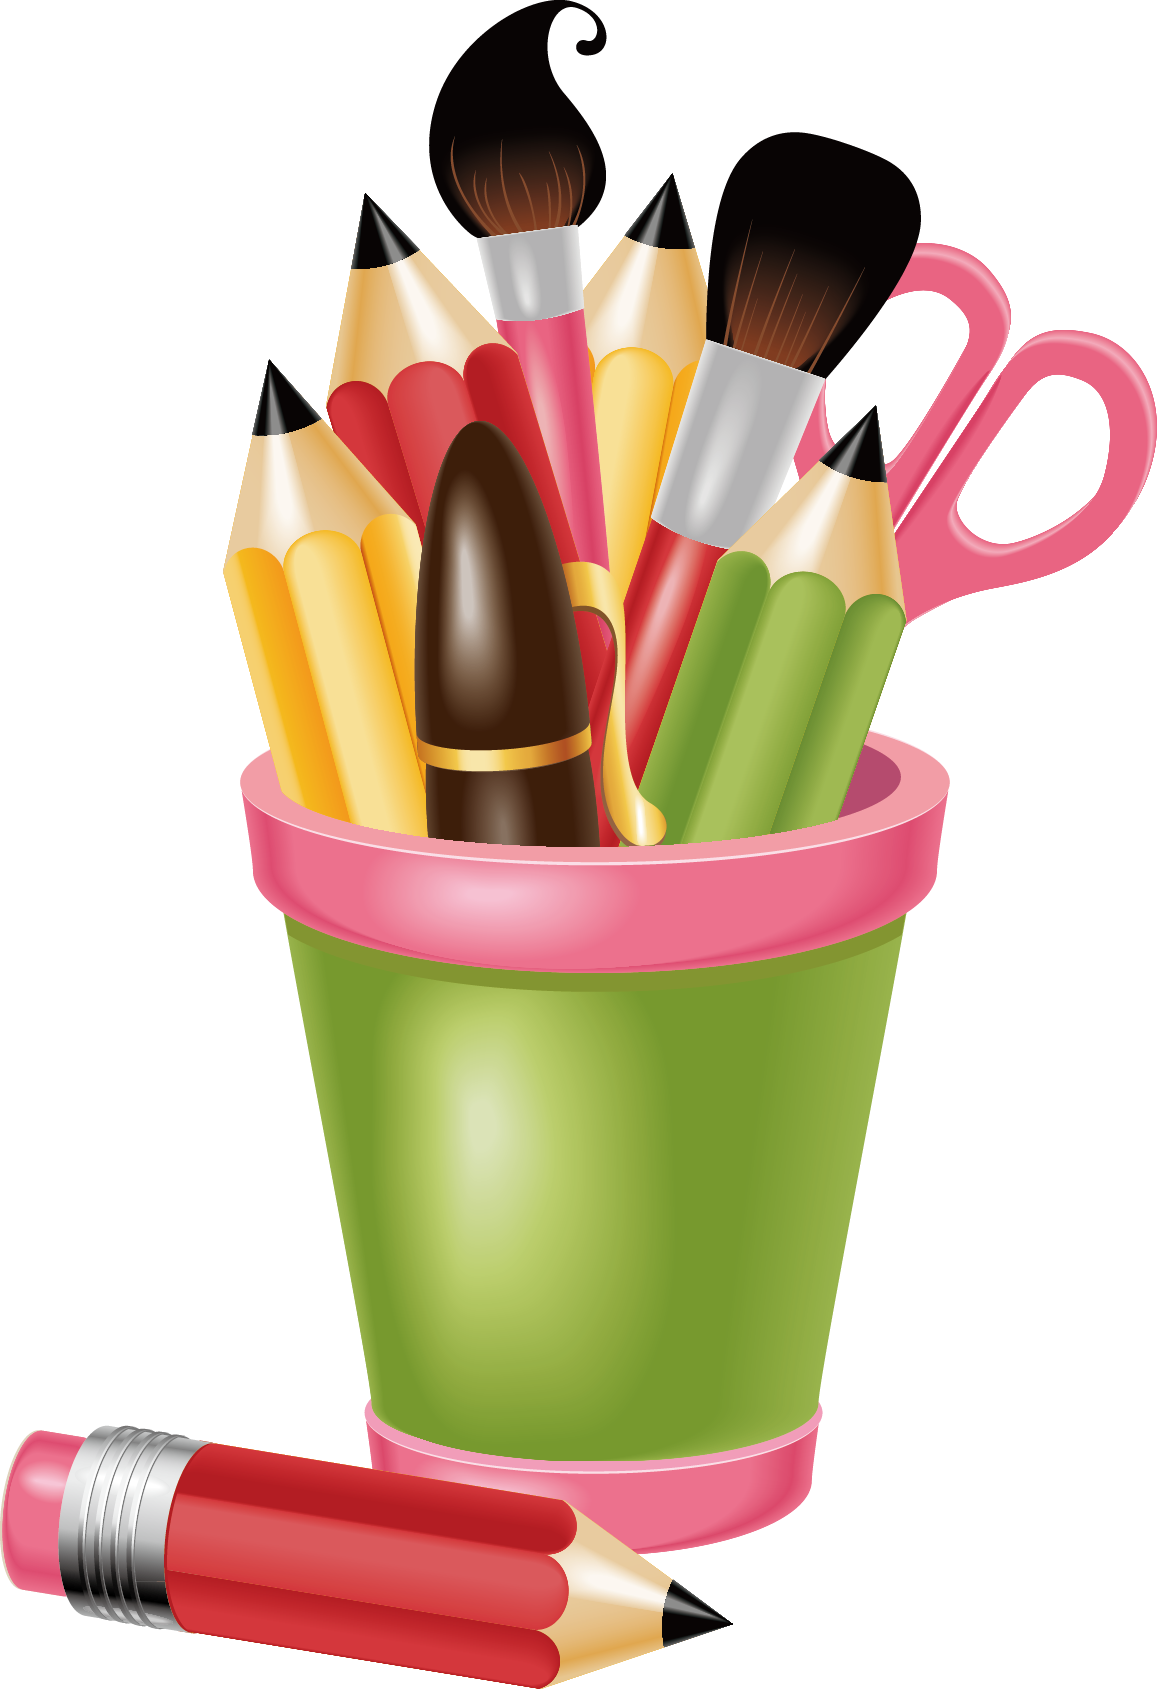 School stationery clipart picture free library School Clip art - Painting tools 1157*1689 transprent Png Free ... picture free library